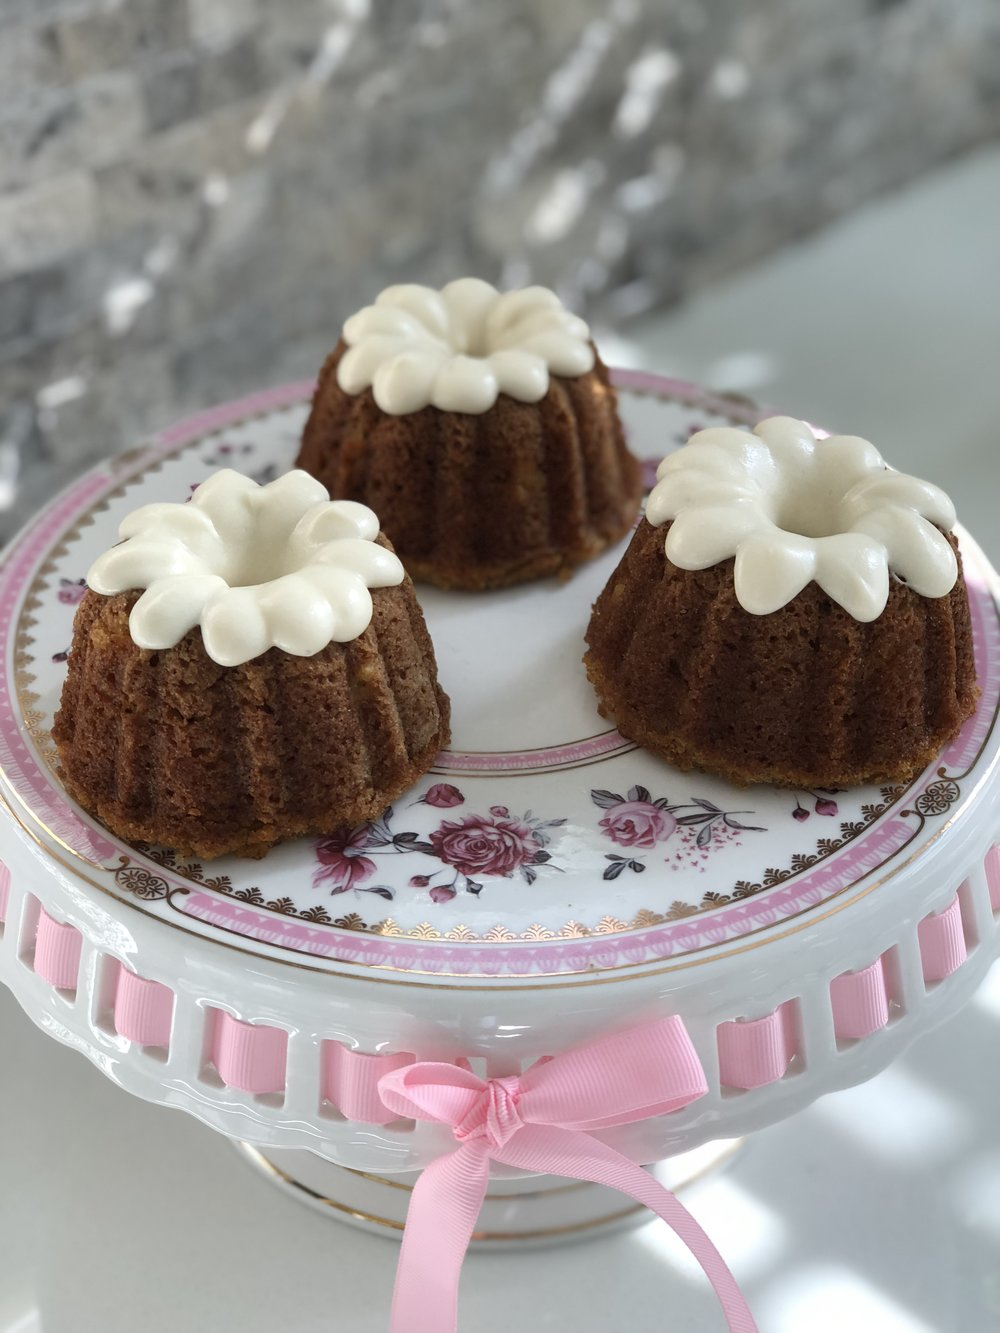 Gluten, Dairy & Soy Free Mini Bundt Cakes with DF Cream Cheese Frosting  $18 per three